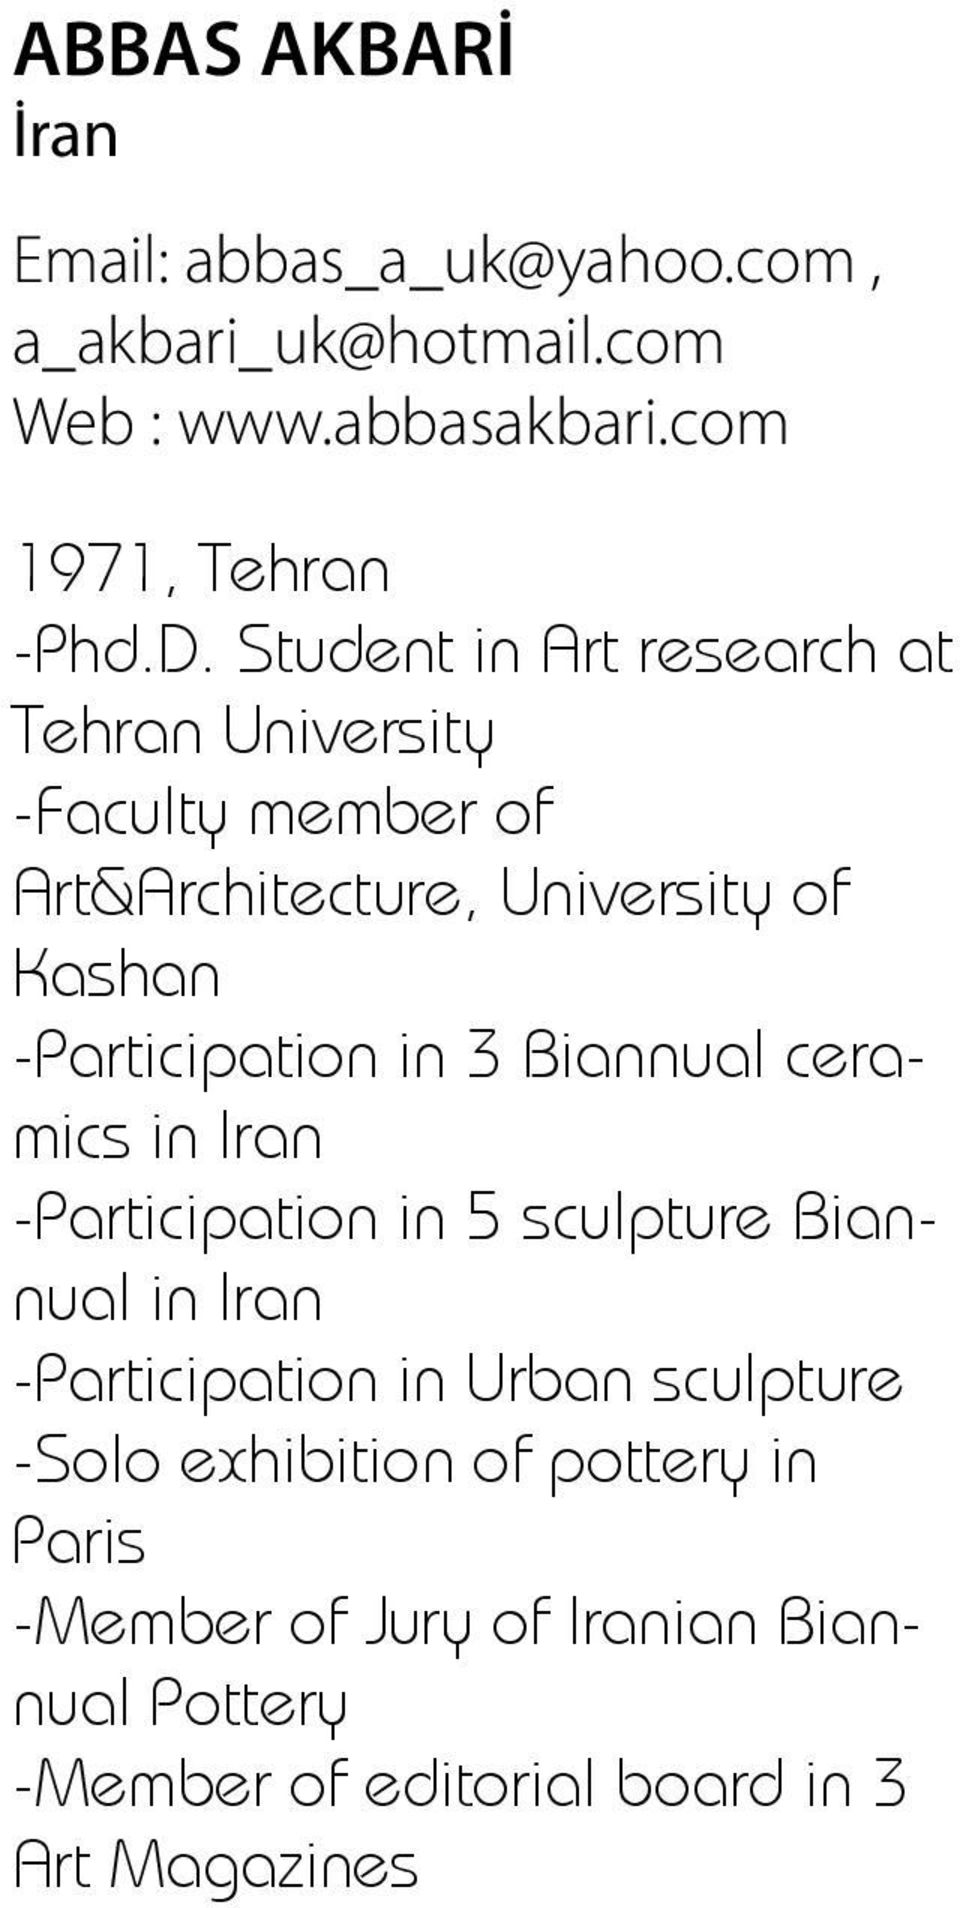 in 3 Biannual ceramics in Iran -Participation in 5 sculpture Biannual in Iran -Participation in Urban sculpture -Solo